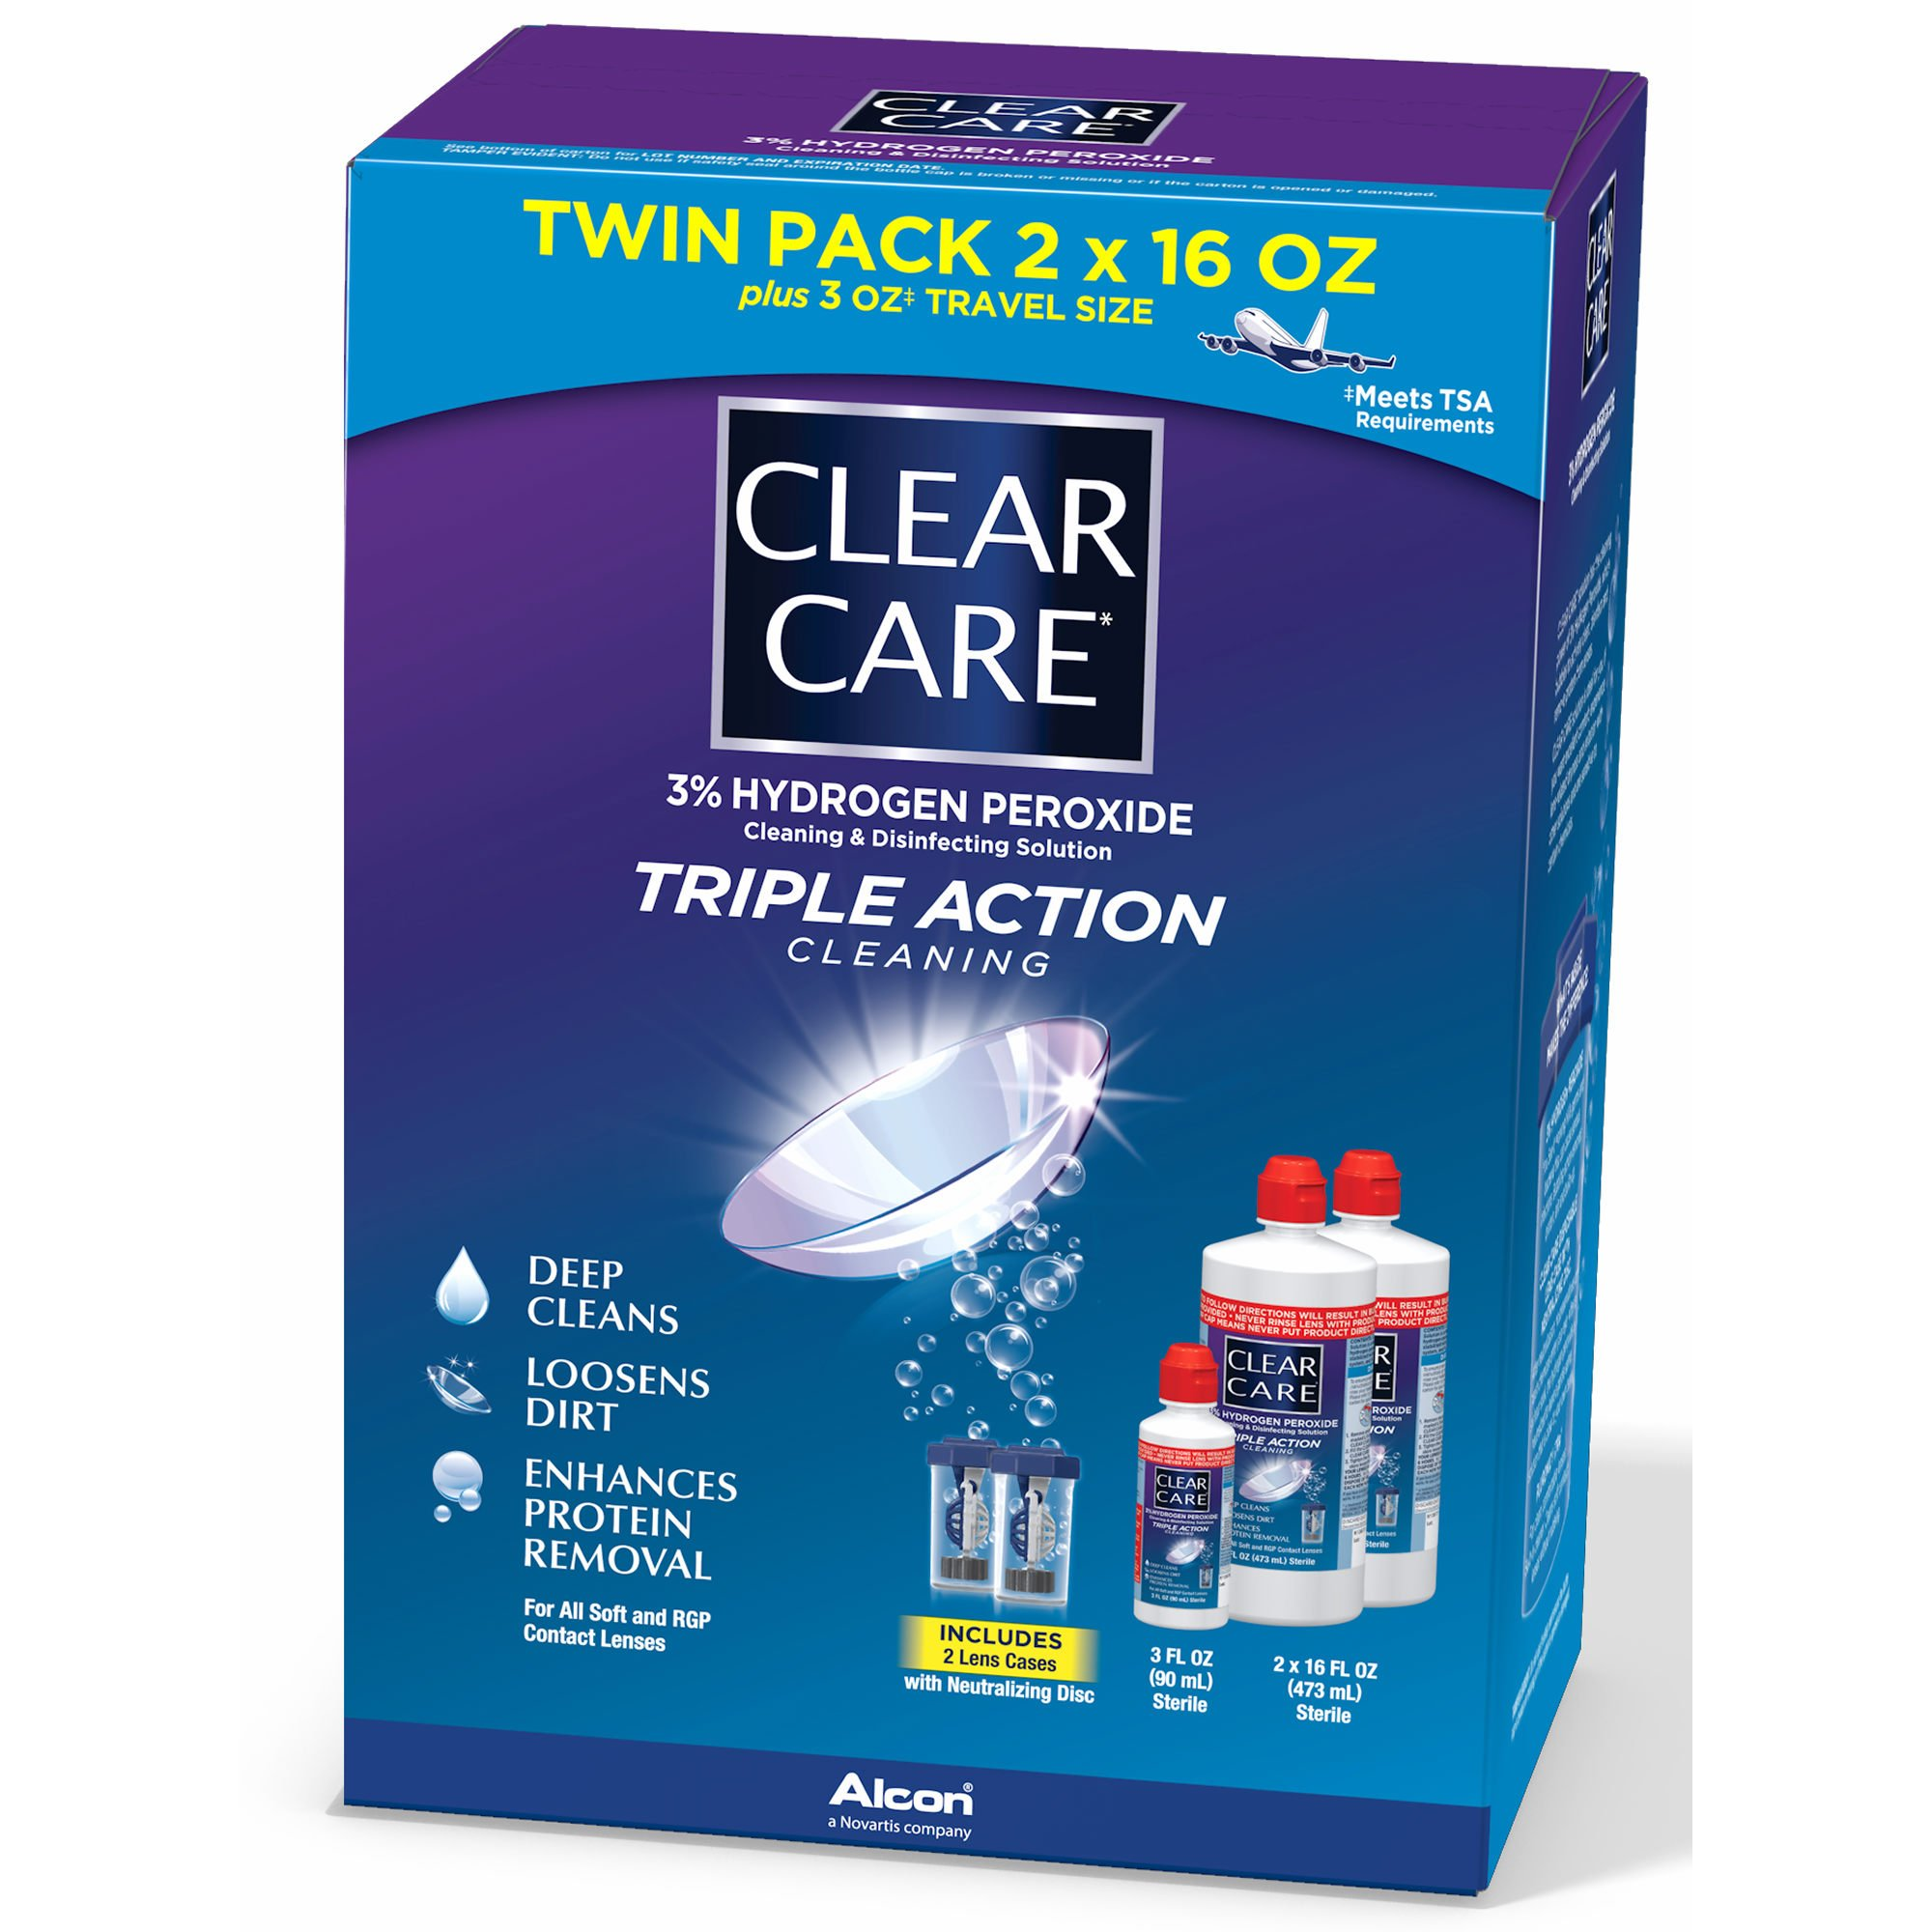 Clear Care Contact Lens Care Solution, 2 pk./16 fl. oz. with Bonus Travel Size, 3 fl. oz. and 2 Lens Cases (pack of 6)